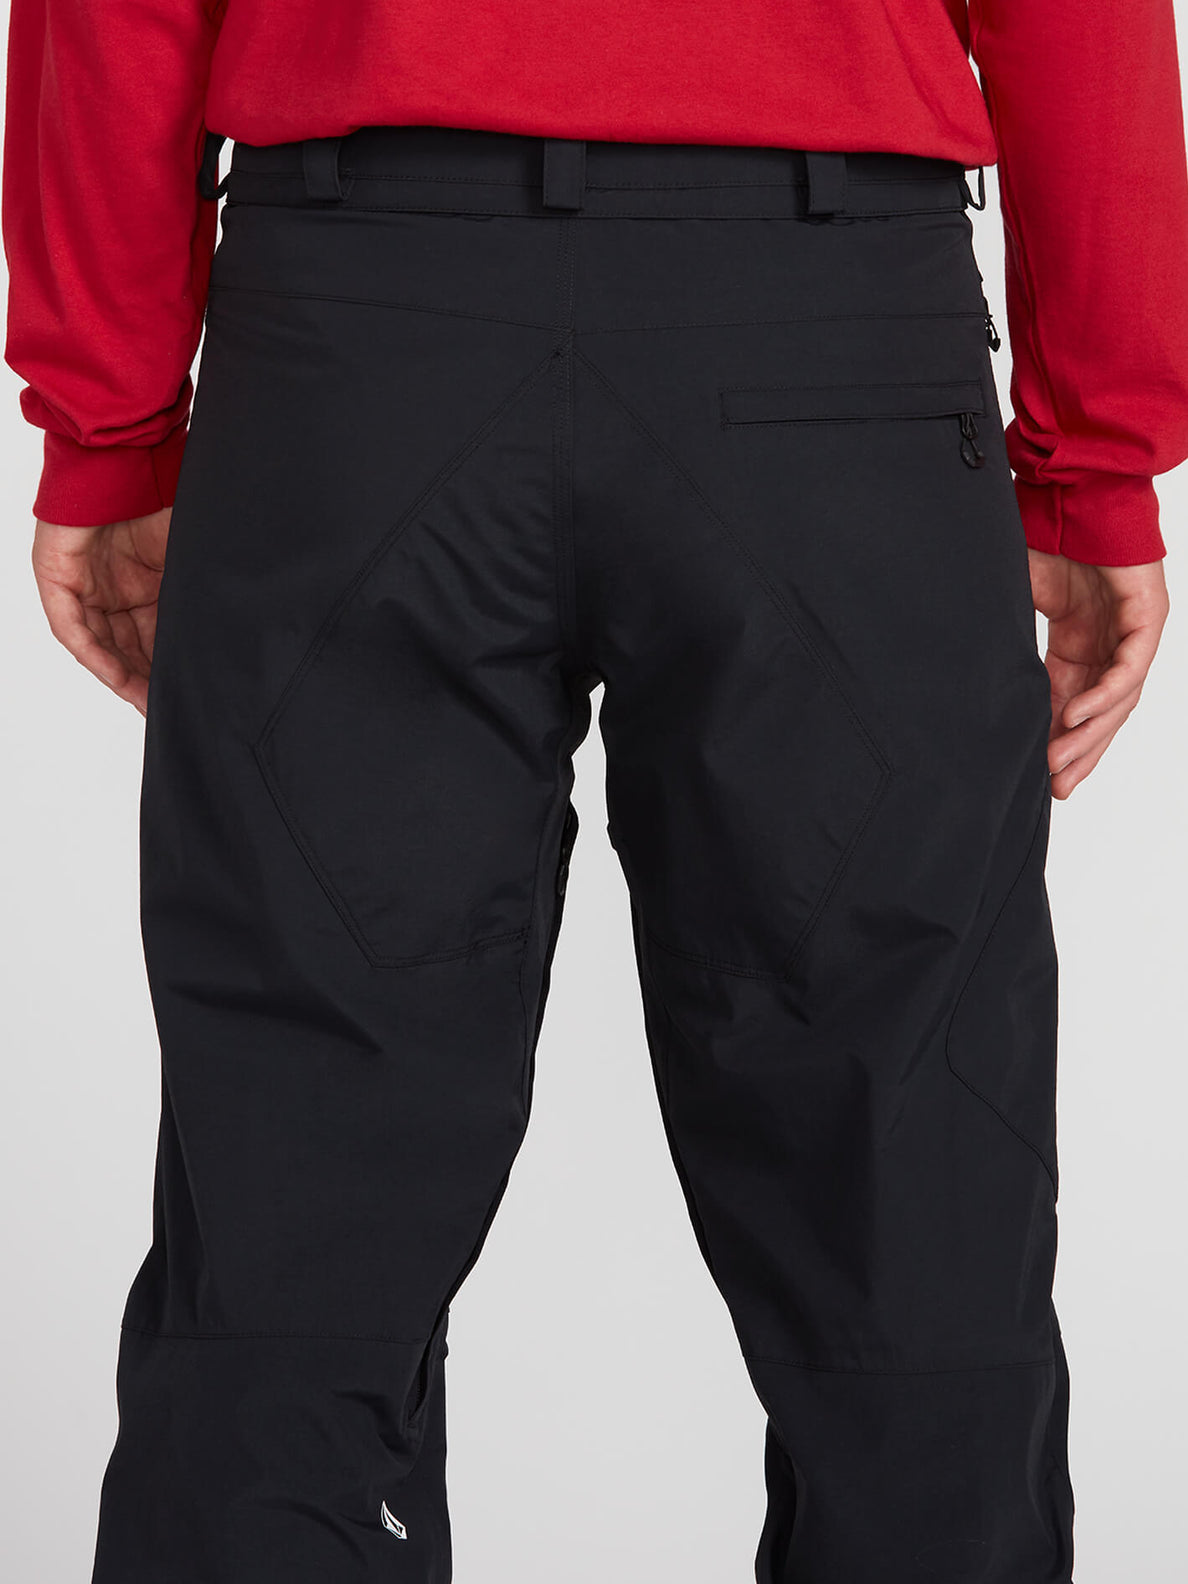 L Gore-Tex Pants - Black (G1351904_BLK) [03]